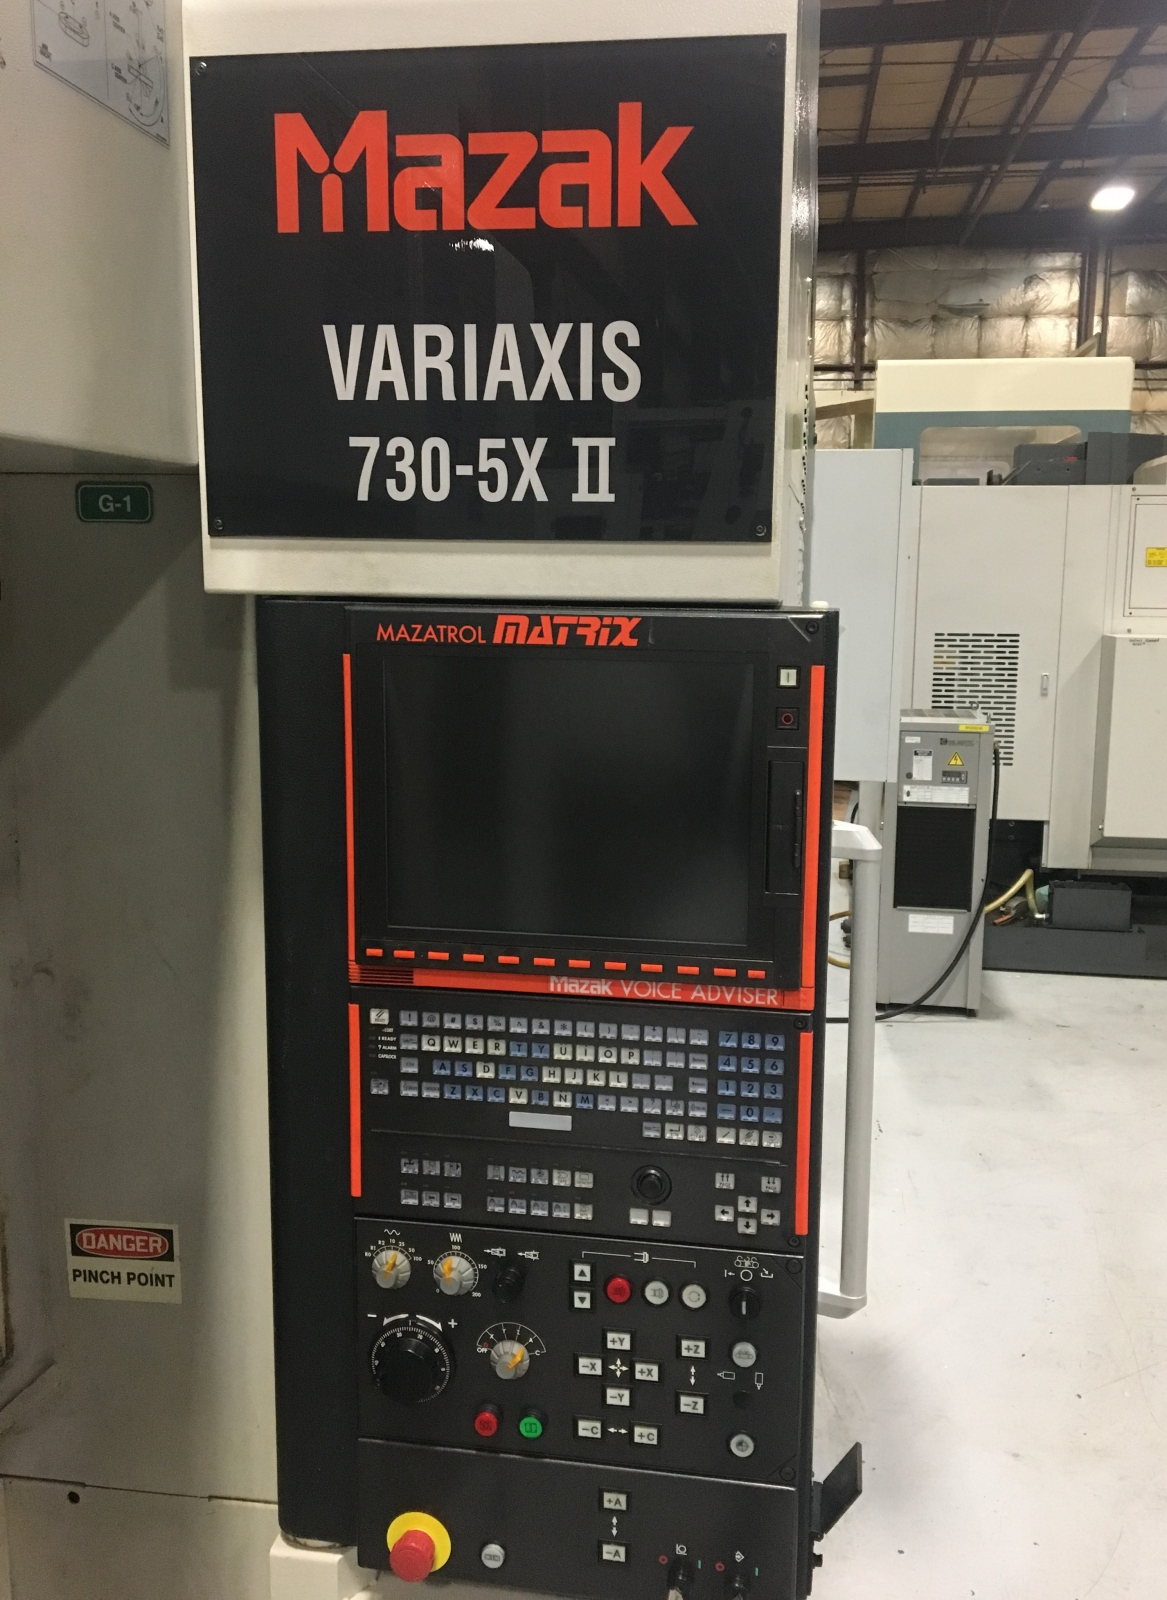 2012 MAZAK Variaxis 730-5x II - Vertical Machining Center